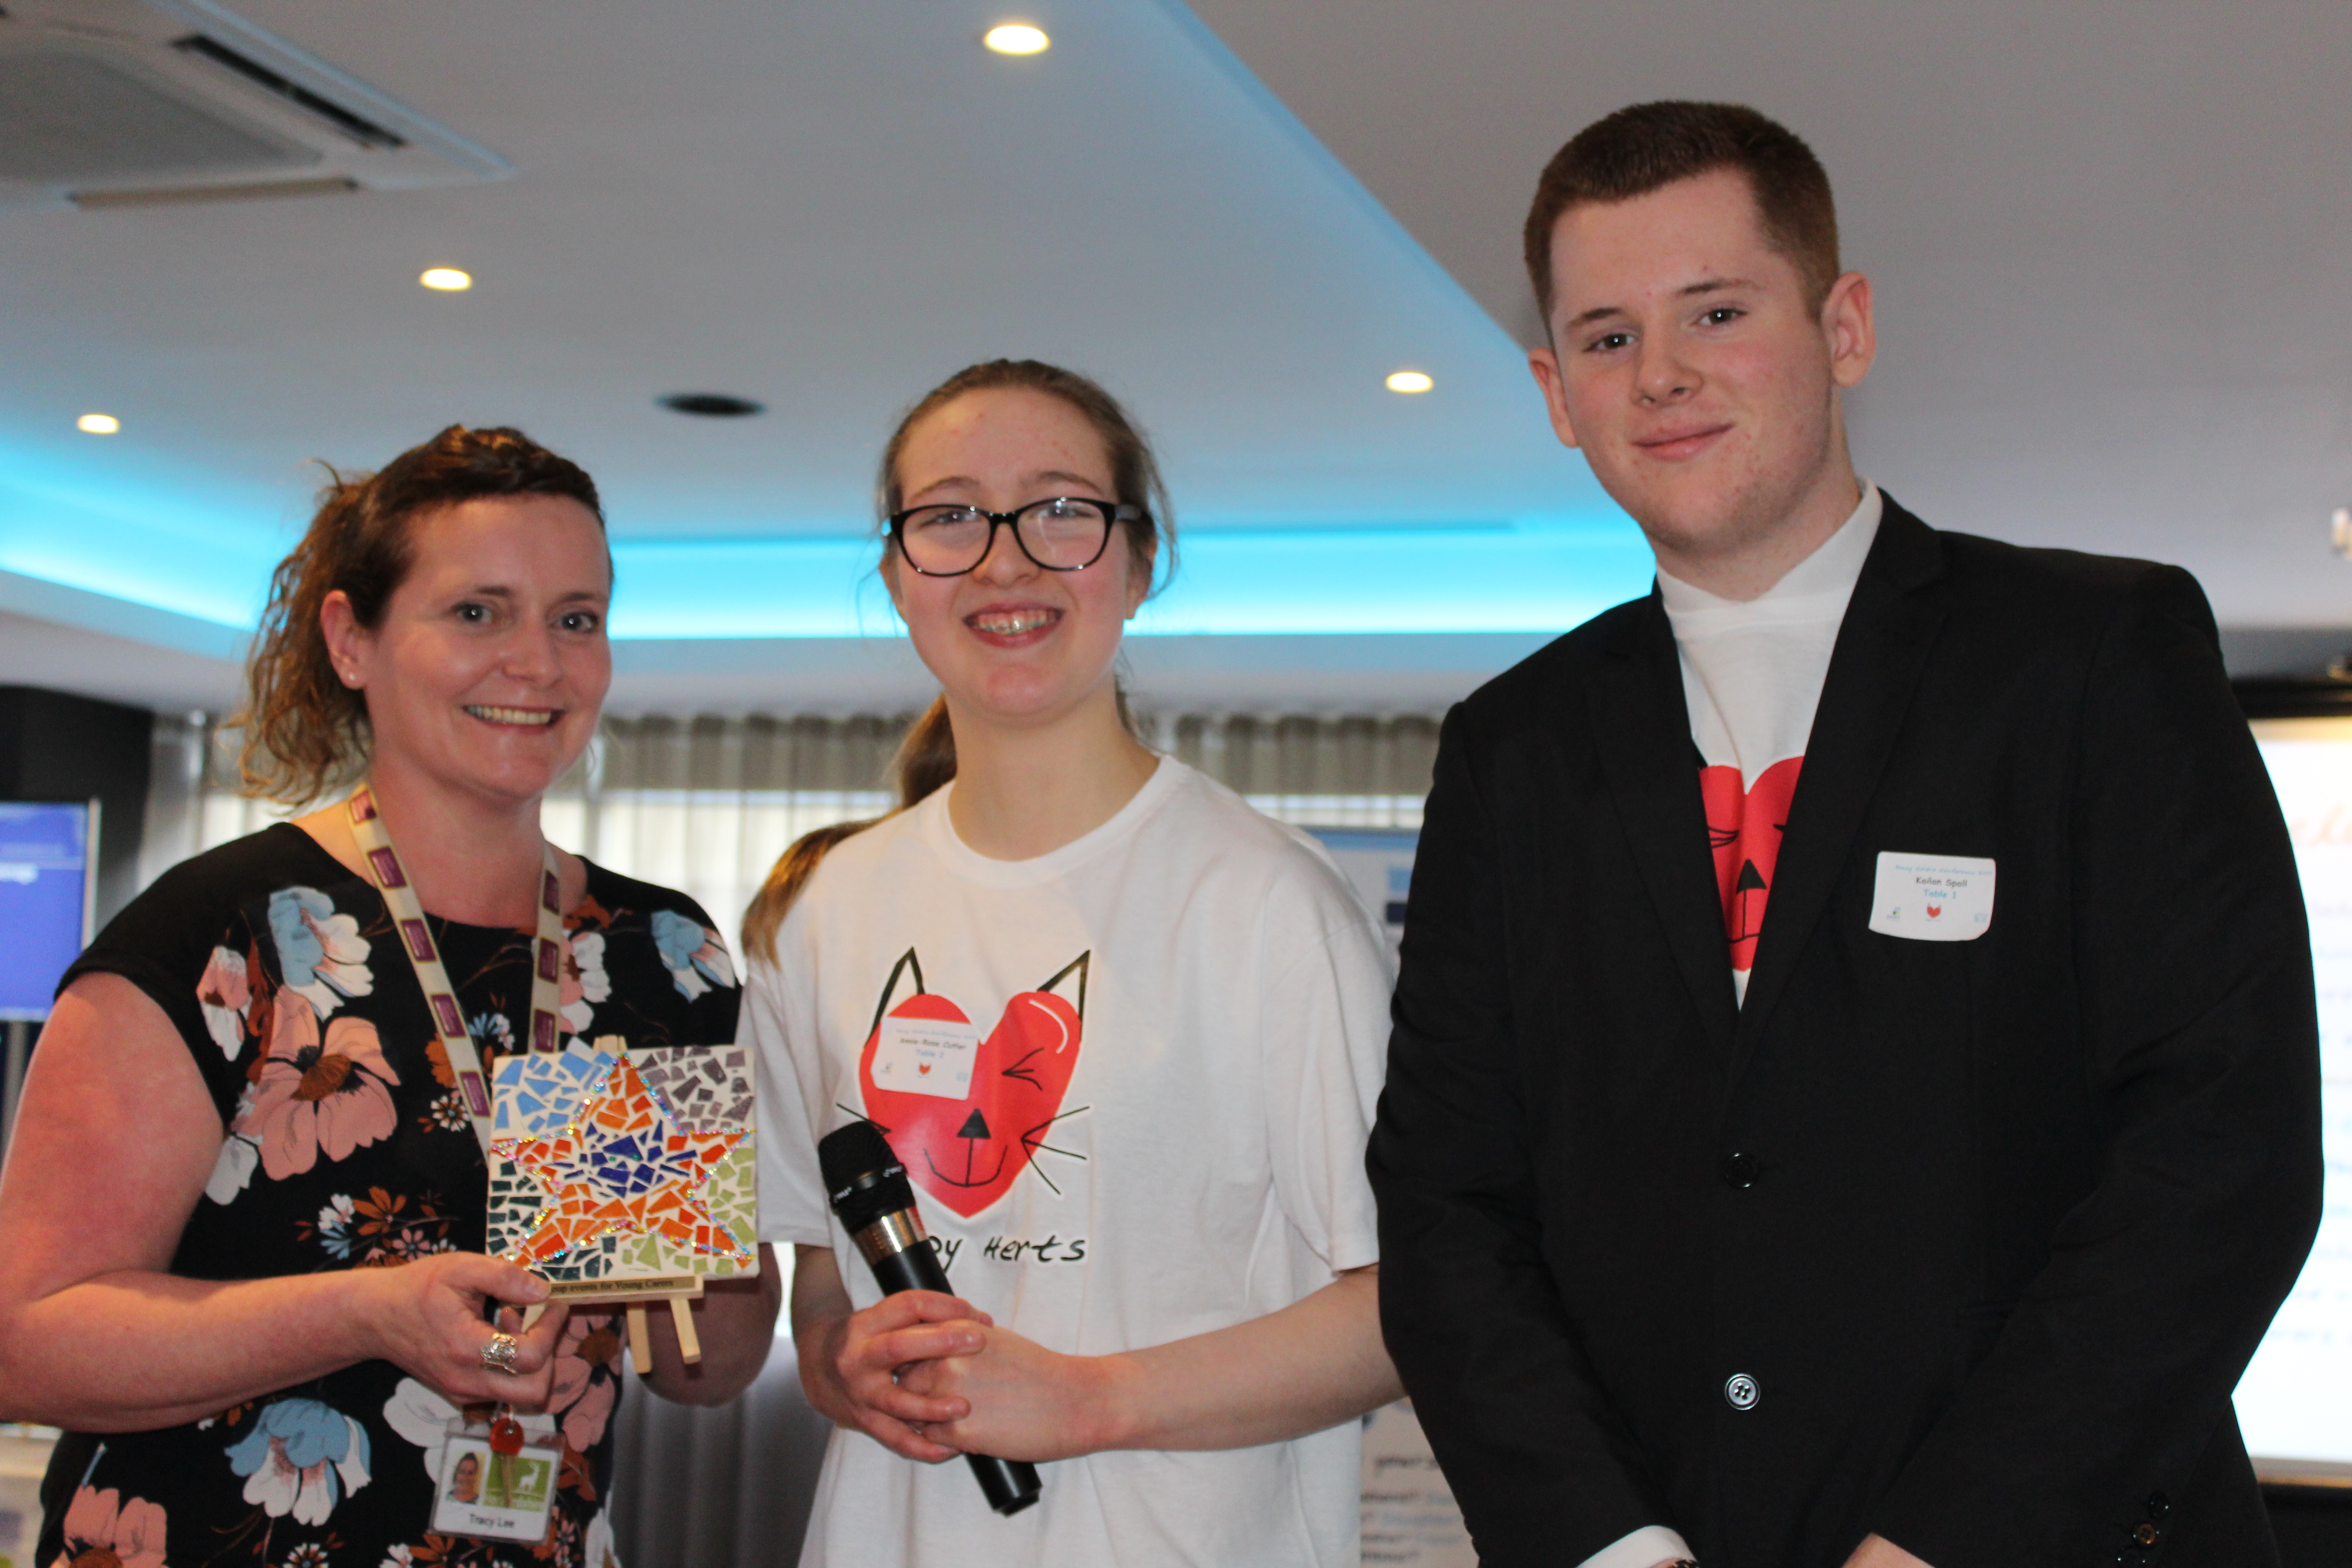 Youth Connexions Hertfordshire youth worker wins award at the 2017 Young Carers Conference